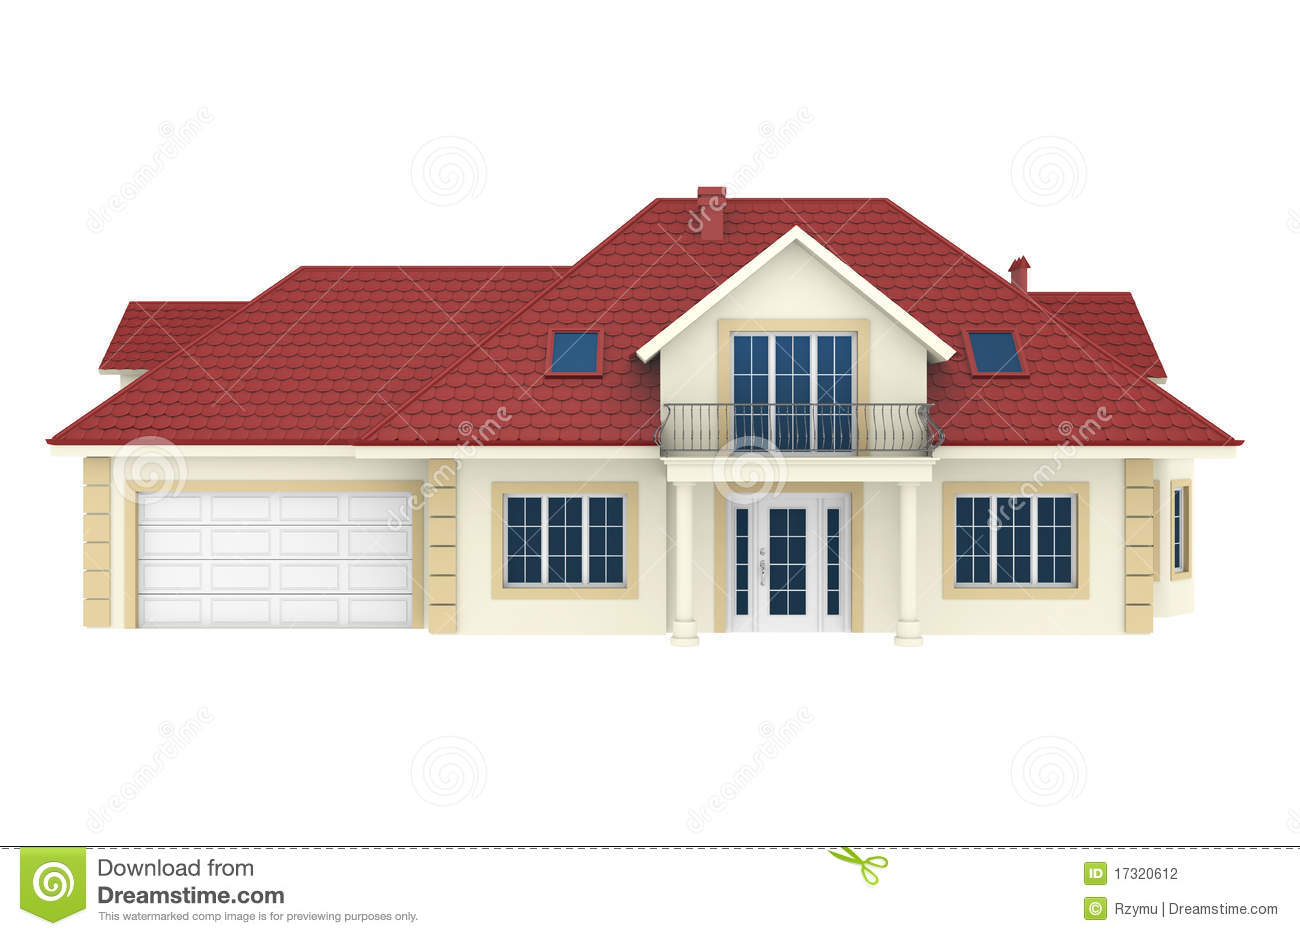 Newsouthclassics together with Stock Photography 3d House Isolated White Background Image17320612 together with Dream Holiday Home Design A Loft With Glass Ceiling also Maison De Vacances Rustique Lands likewise Watch. on modern cottage house plans